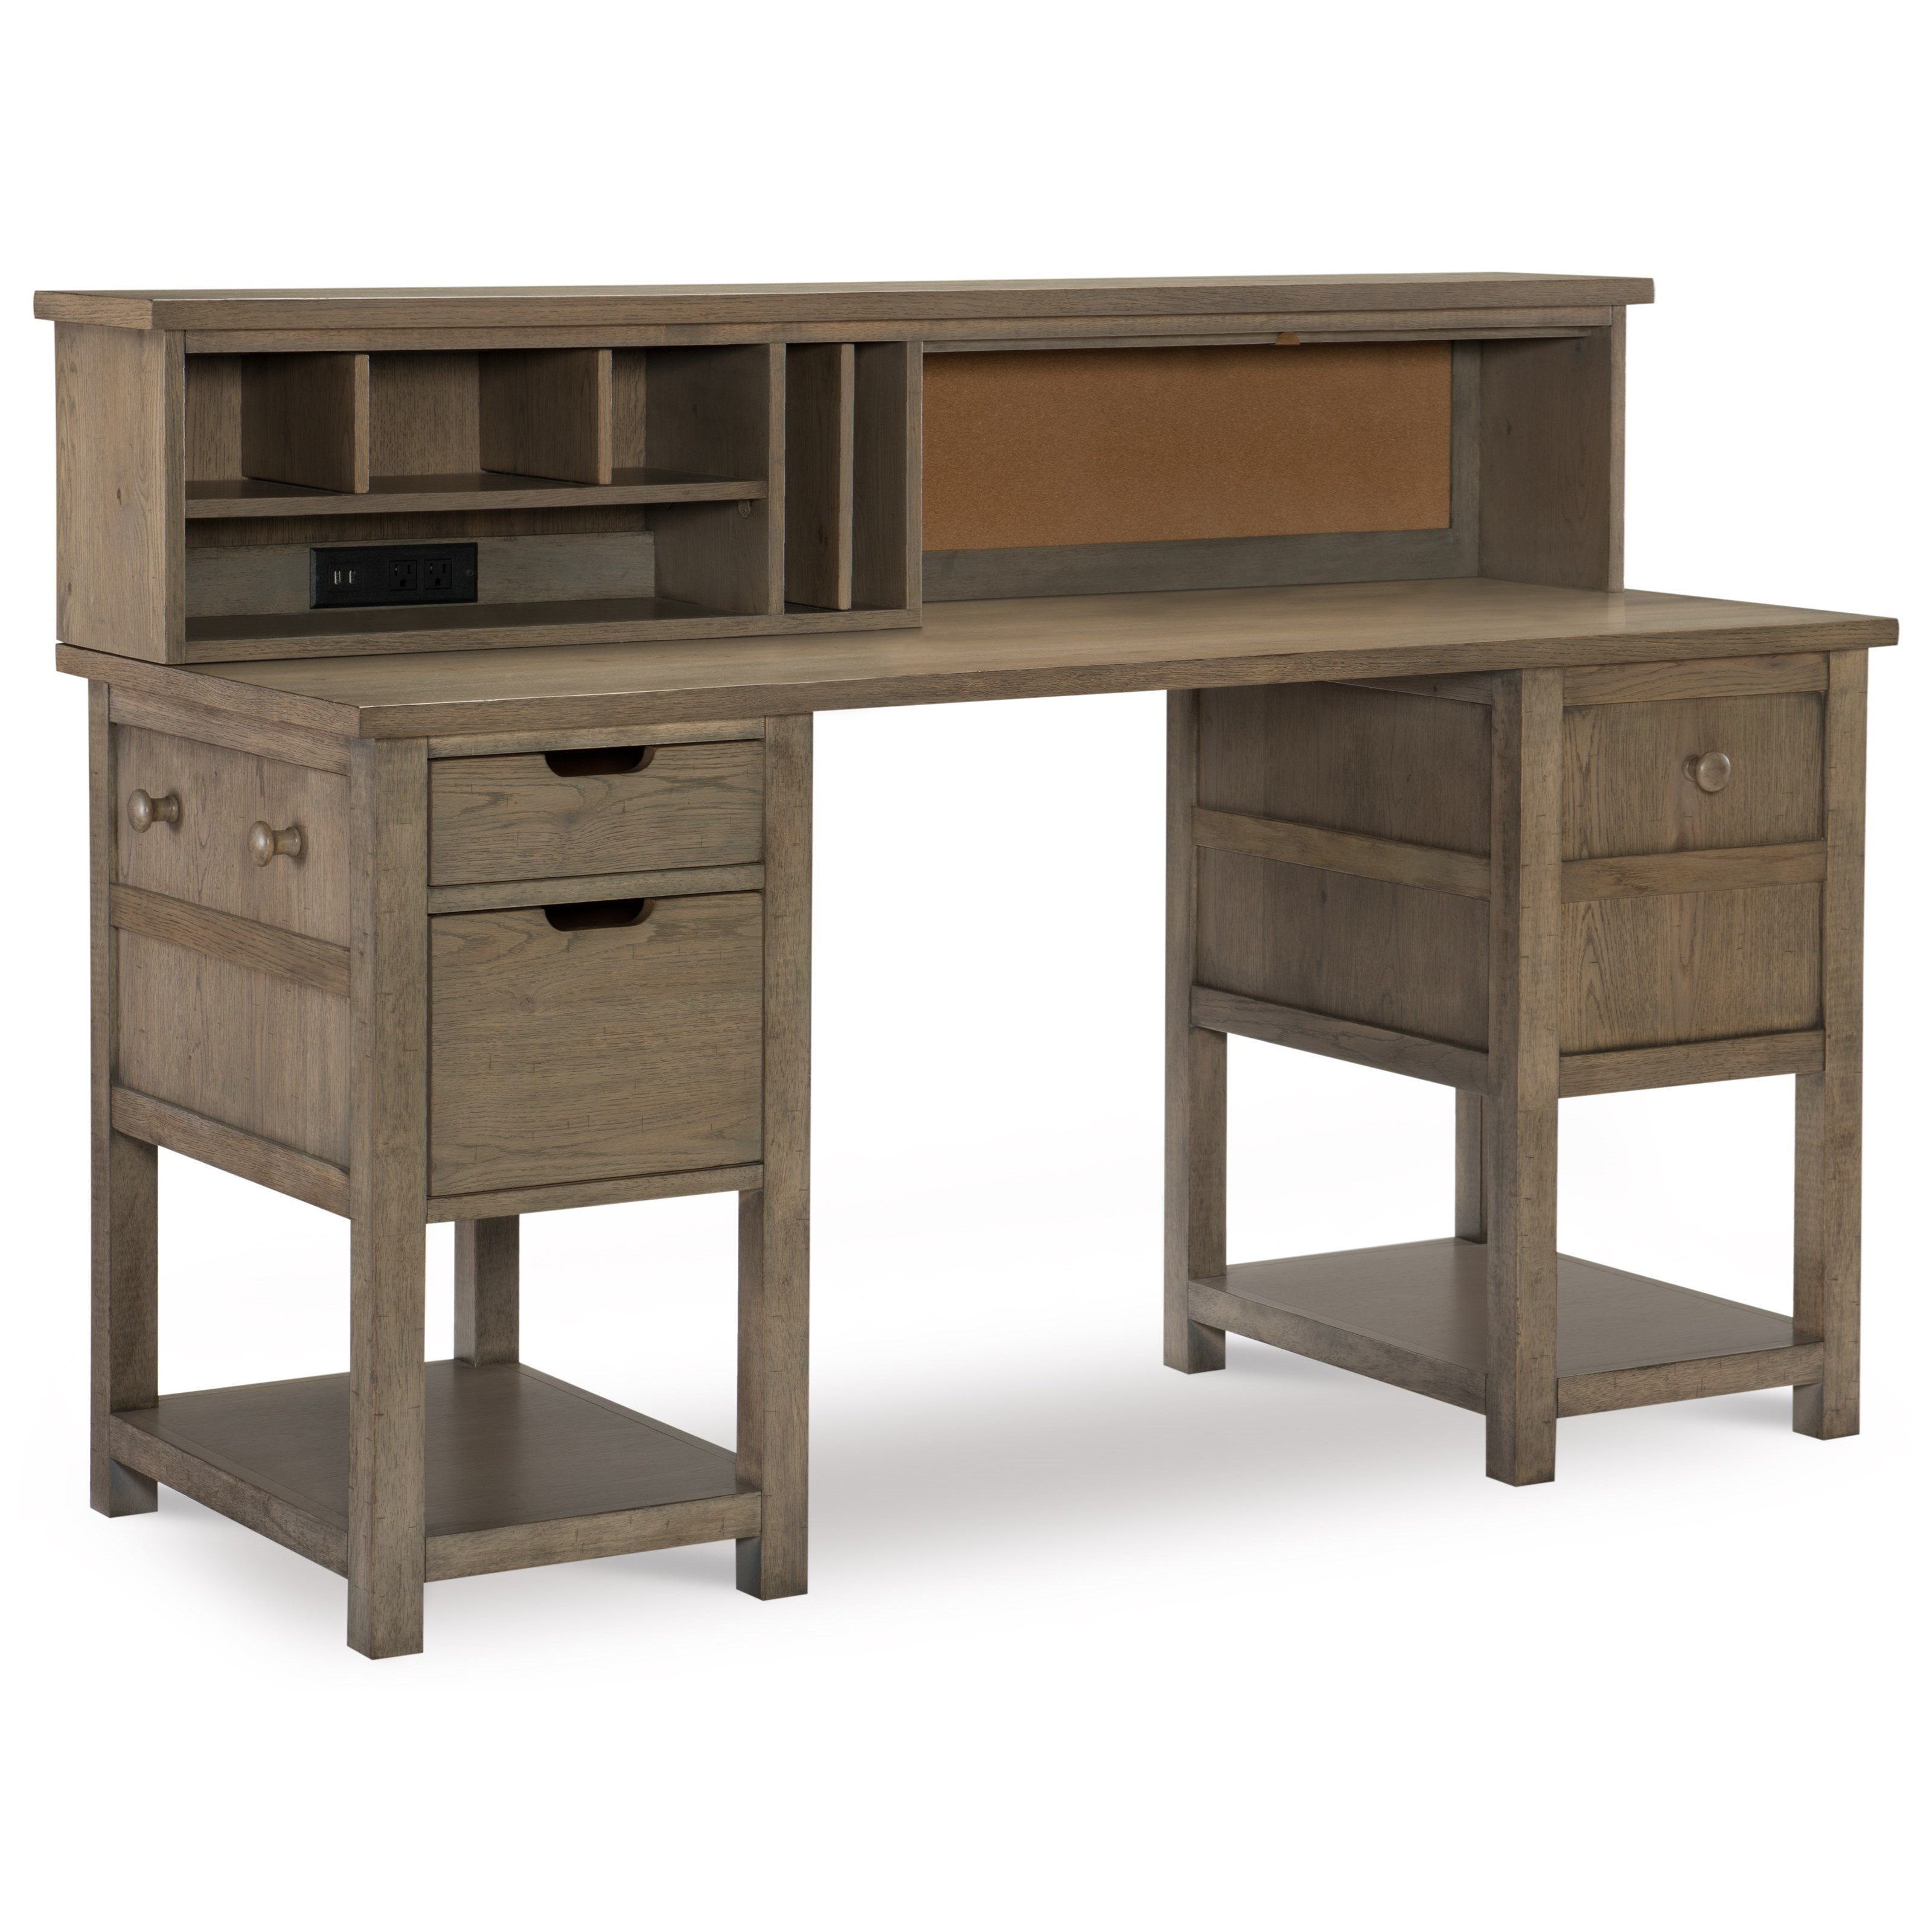 Study Hall Jr. Executive Hutch Desk by Legacy Classic Kids at Jacksonville Furniture Mart